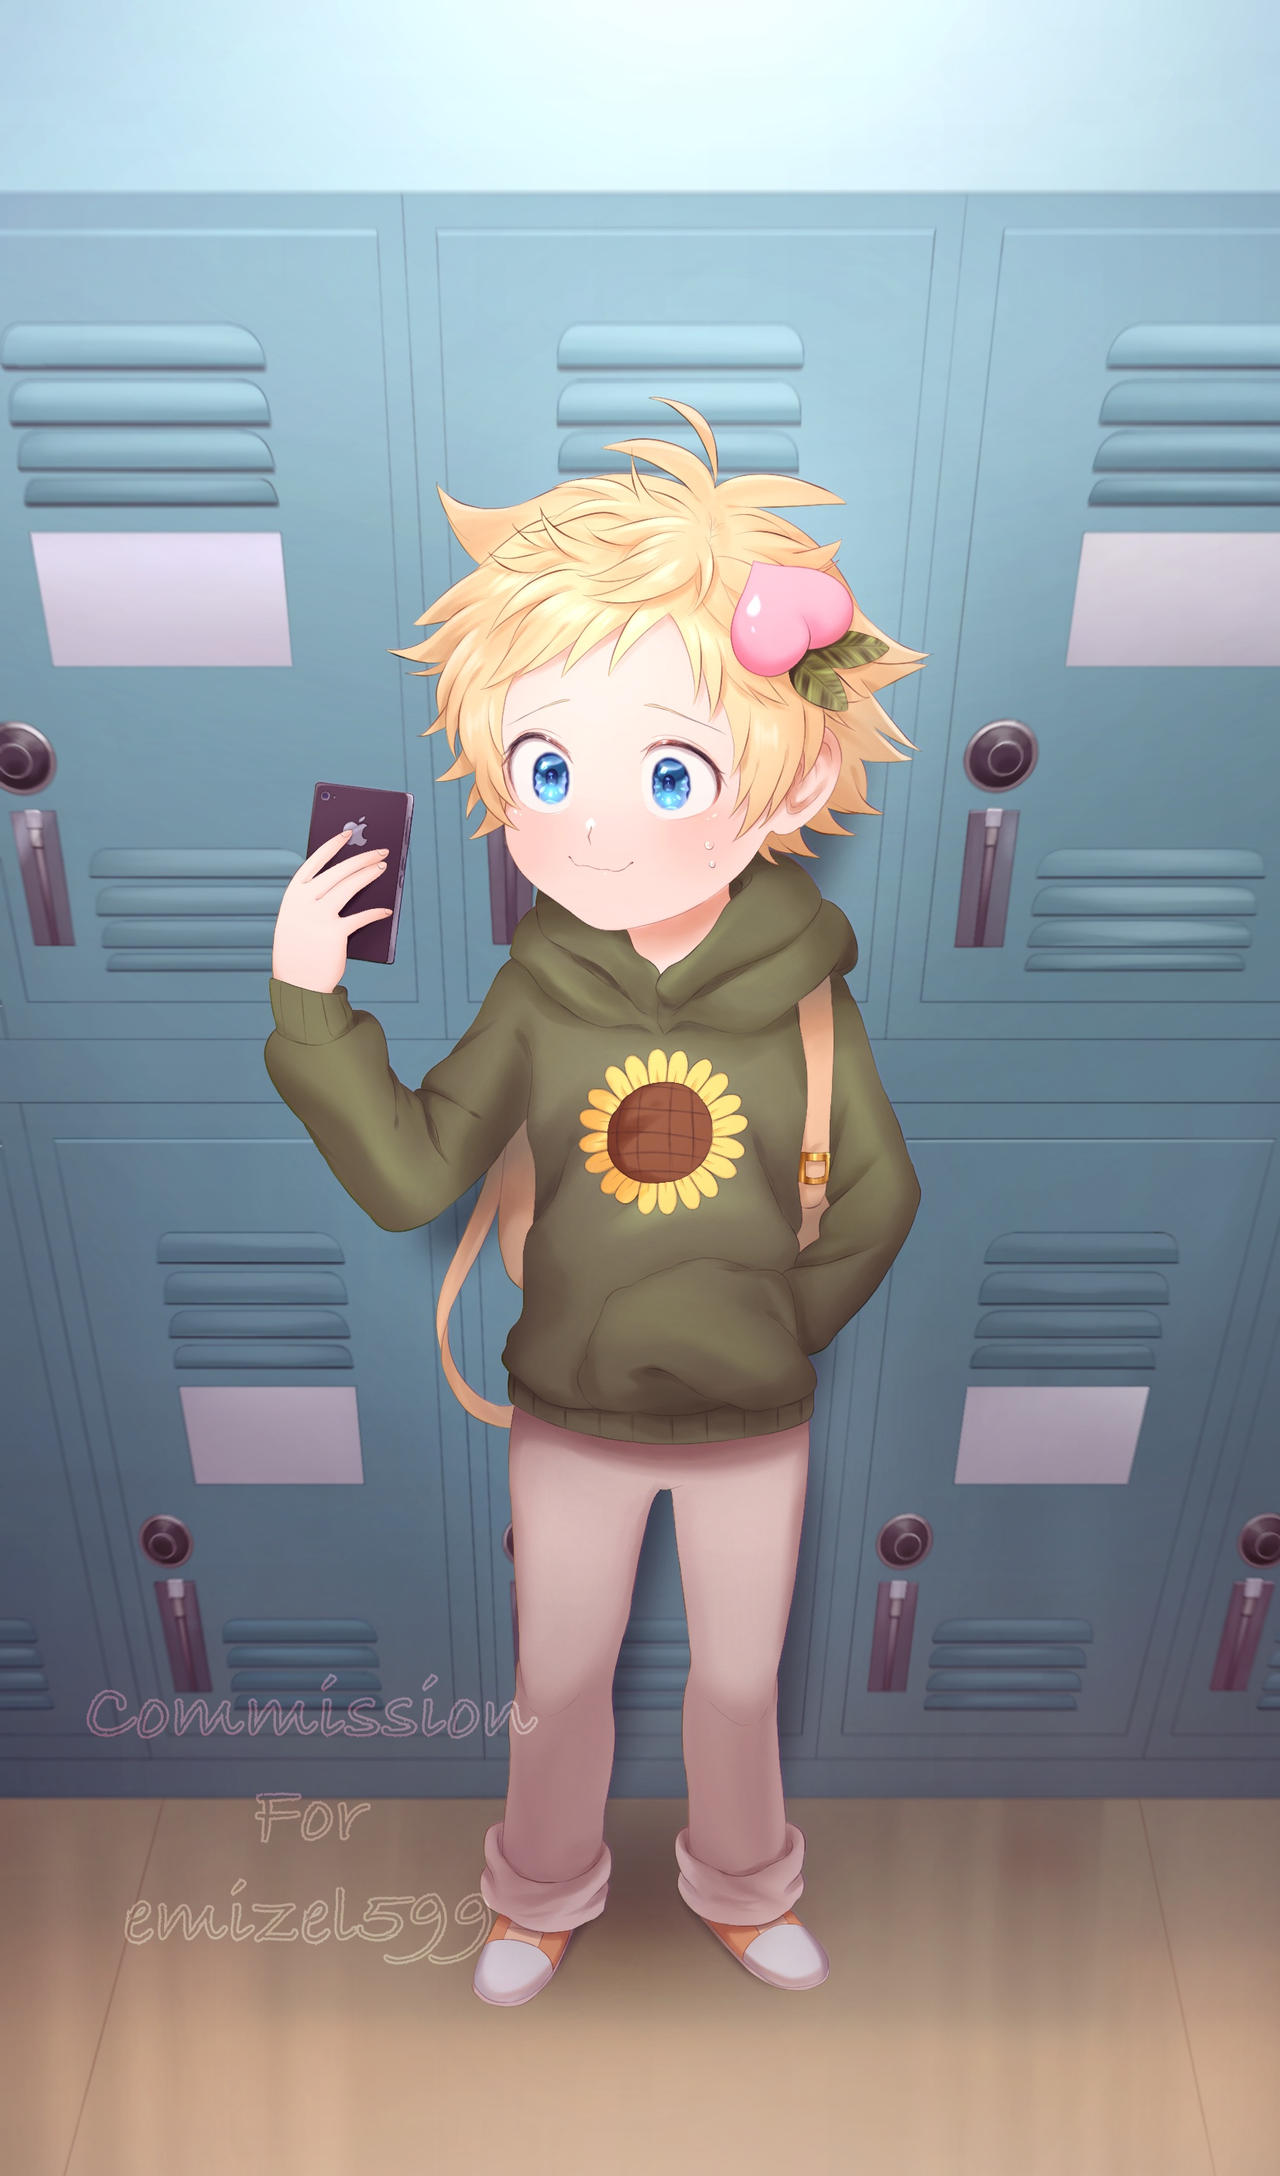 [CM]: Tweek's taking a selfie for Craig.